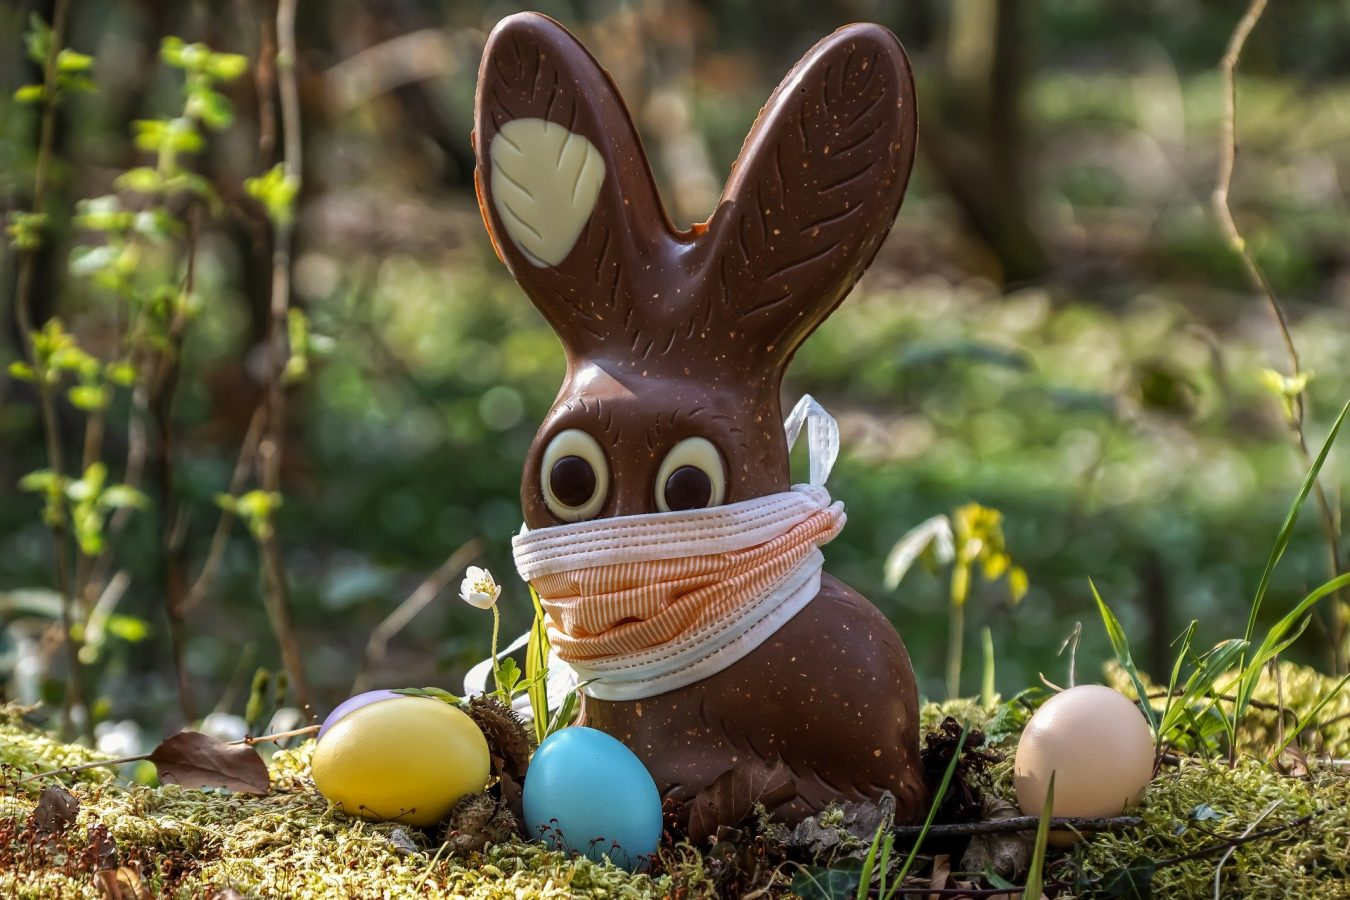 Easter festive things to do amid Covid-19 pandemic